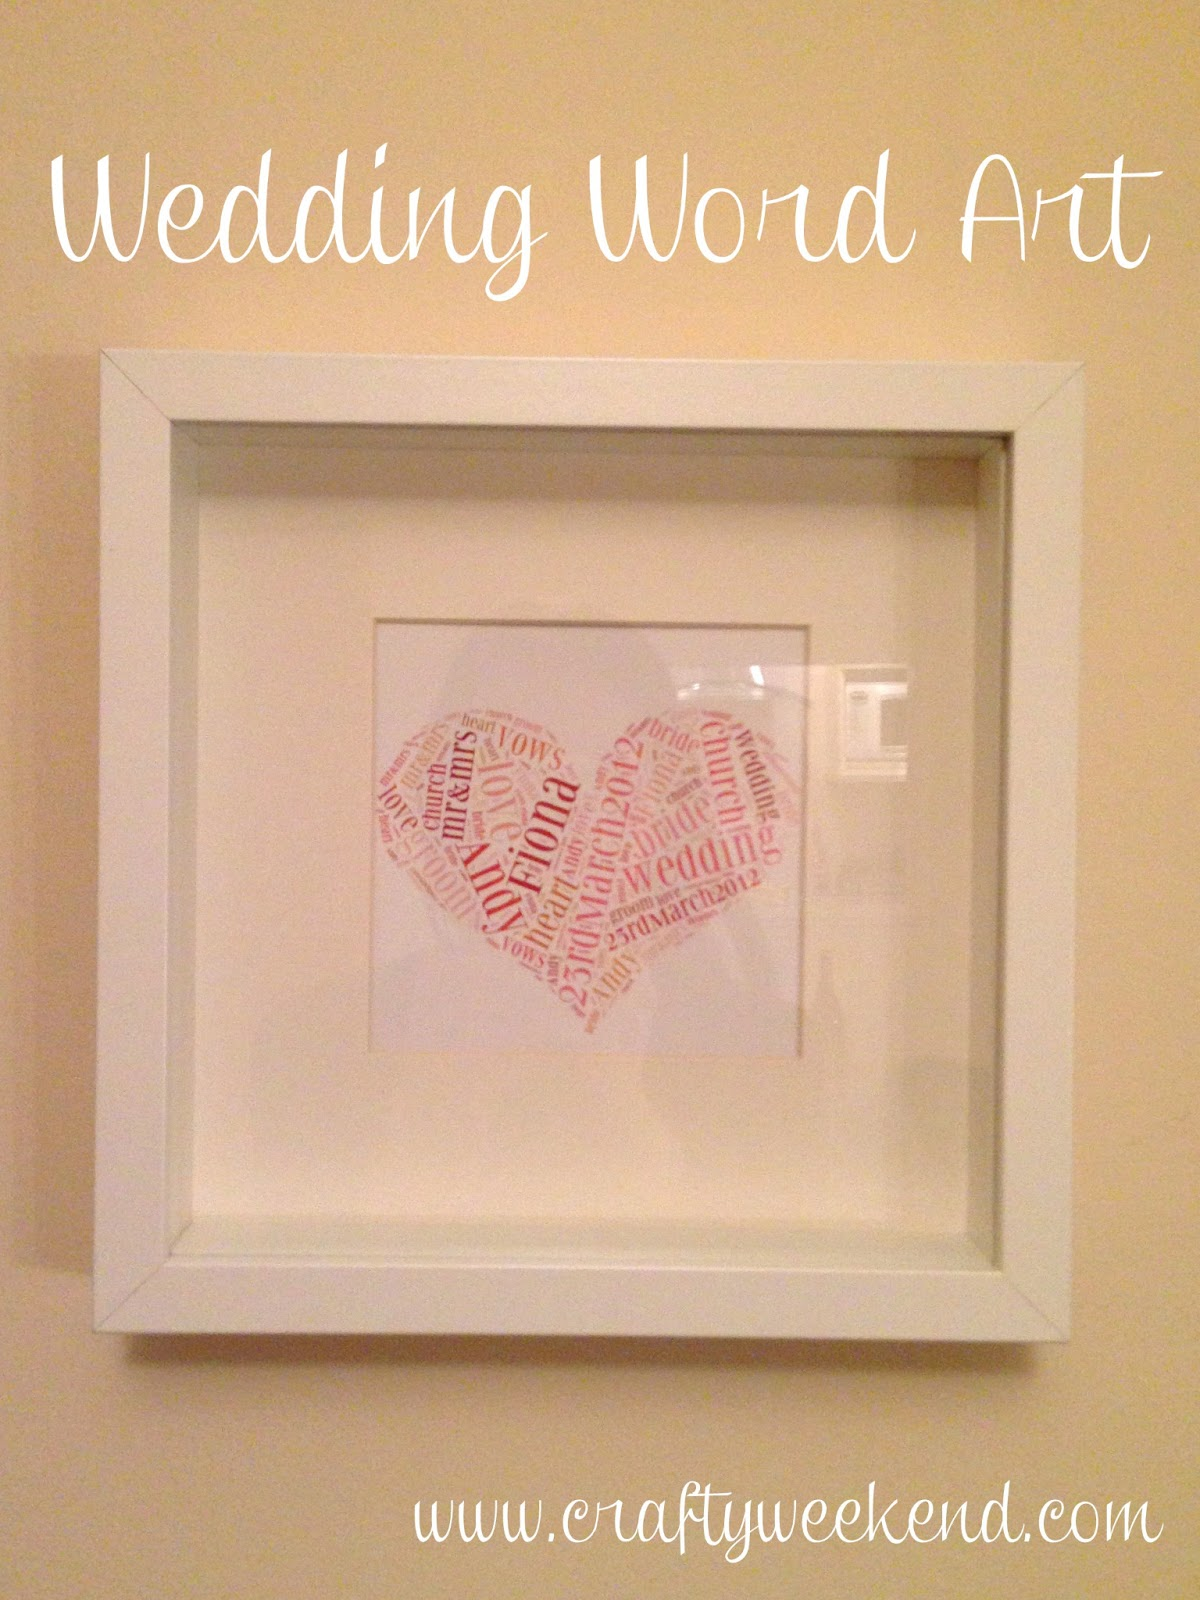 Homemade Wedding Presents Word Art Crafty Weekend Craft Projects